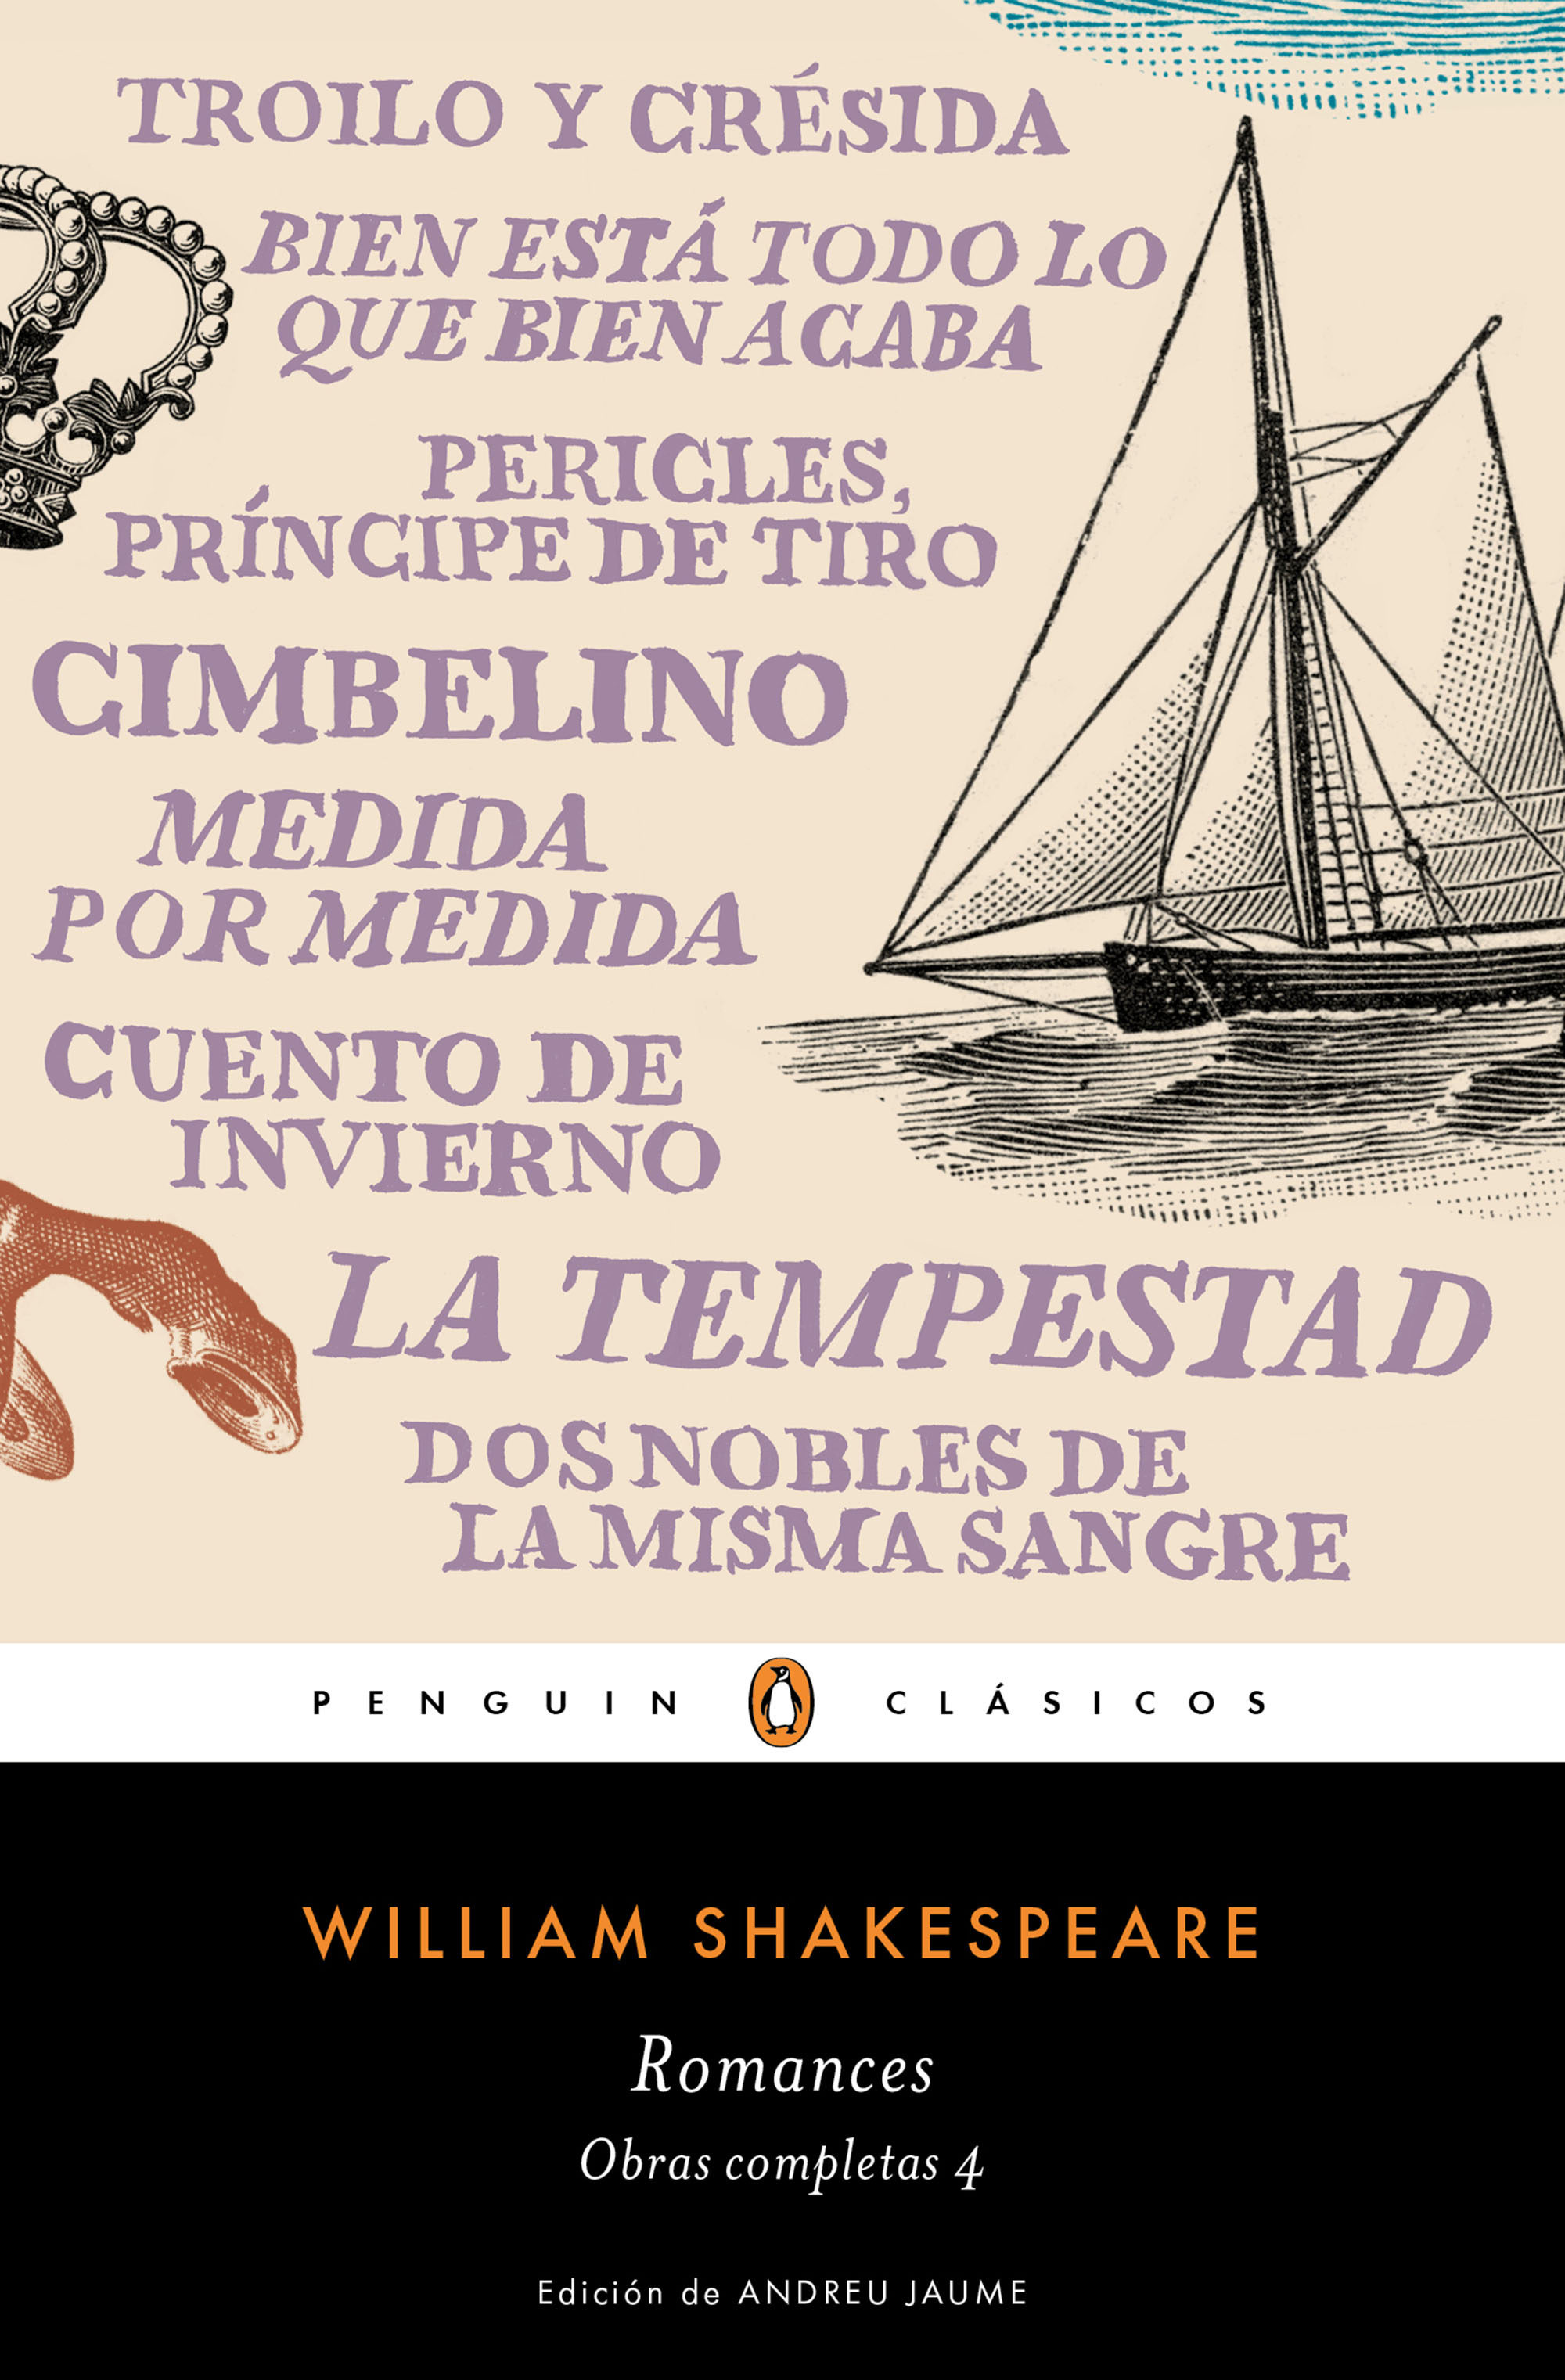 Frases Celebres William Shakespeare William Shakespeare Biografía Características Frases Sus Obras